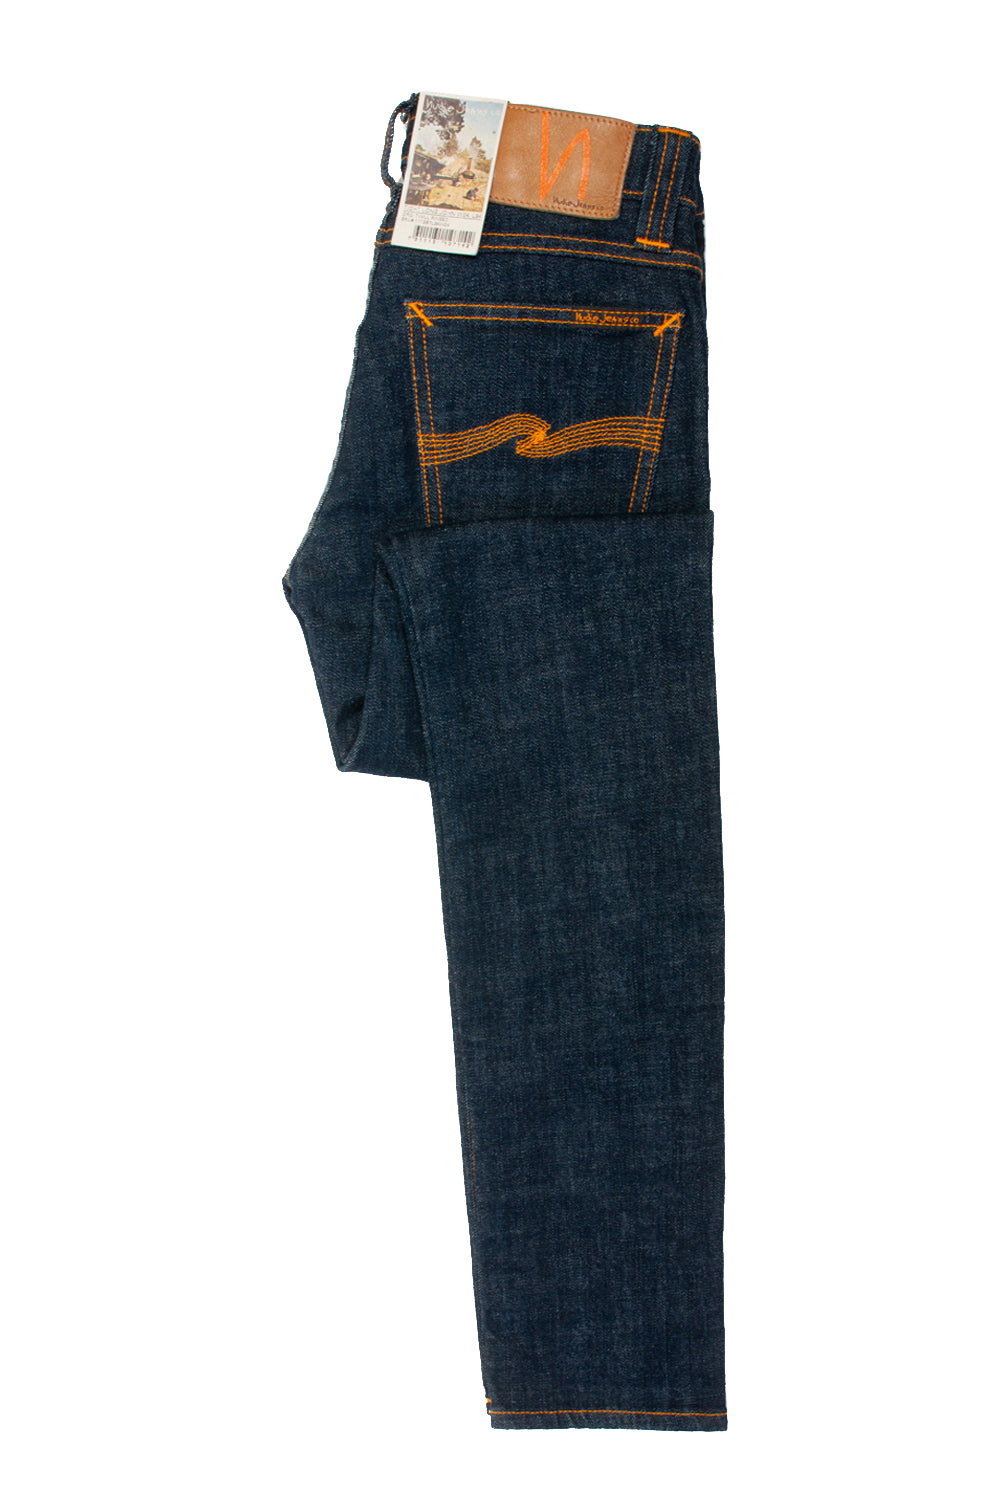 Nudie NWT Tight Long John Jeans for Luxmrkt.com Menswear Consignment Edmonton